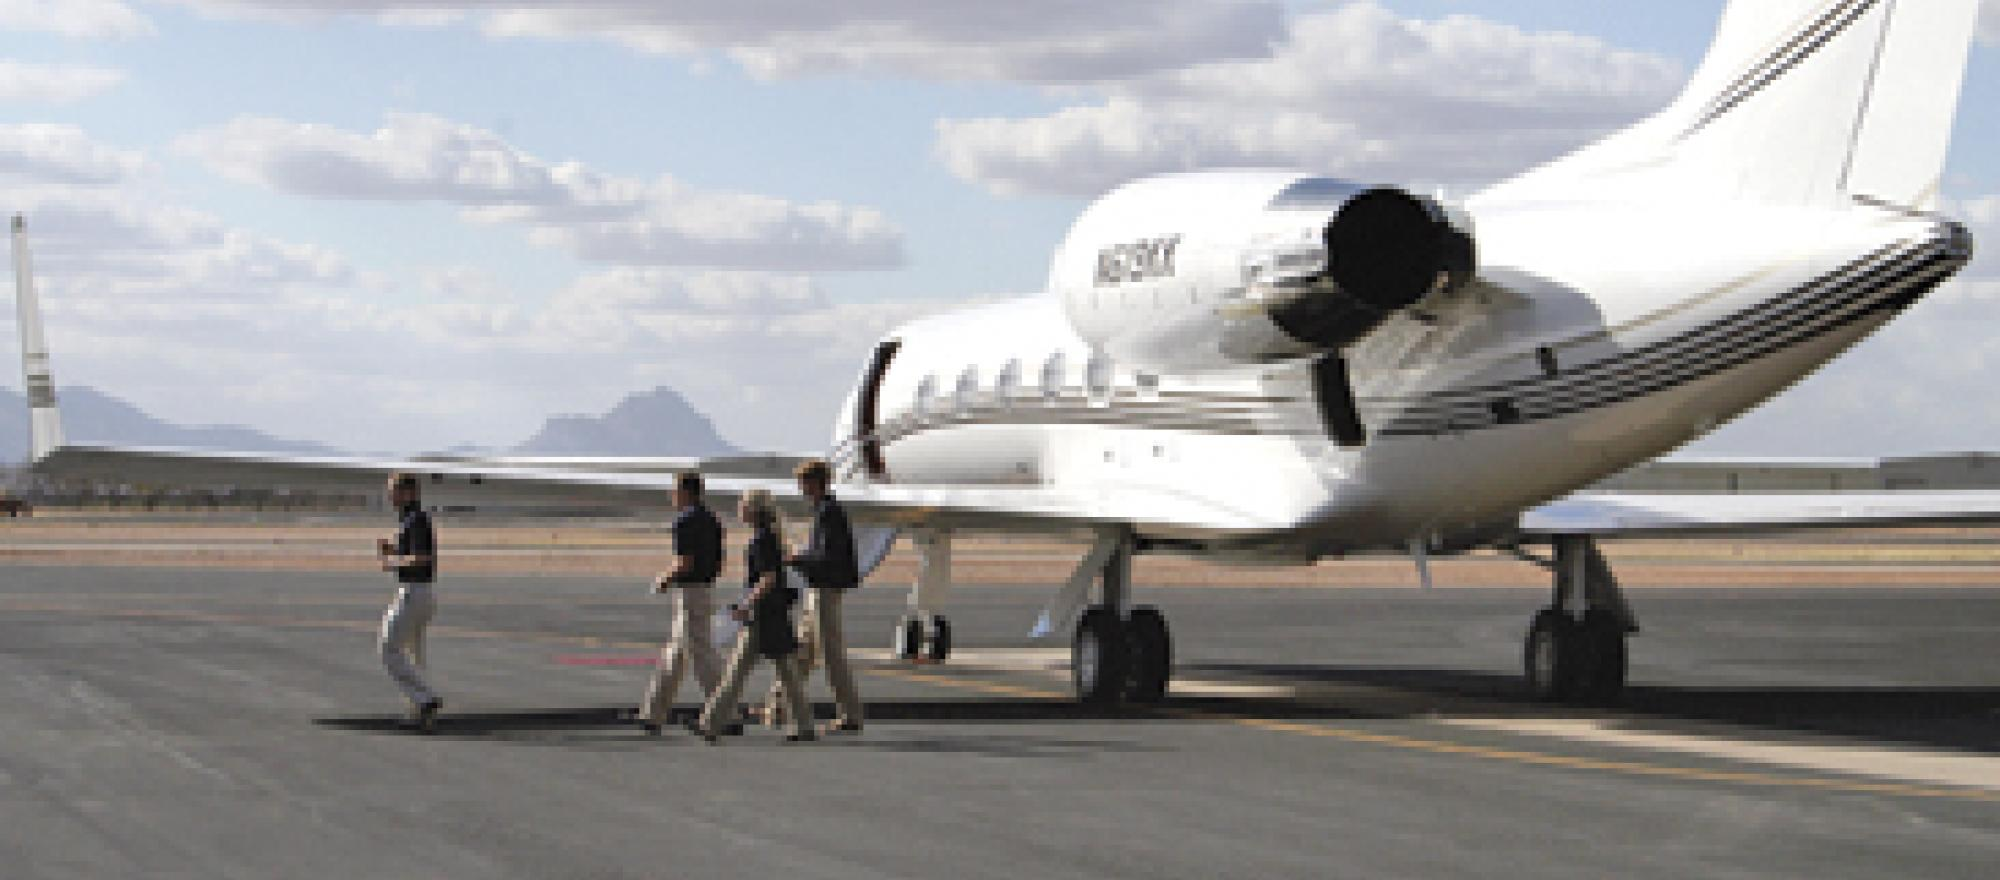 Tucson international airport boasts six FBOs. A seventh is slated to open thi